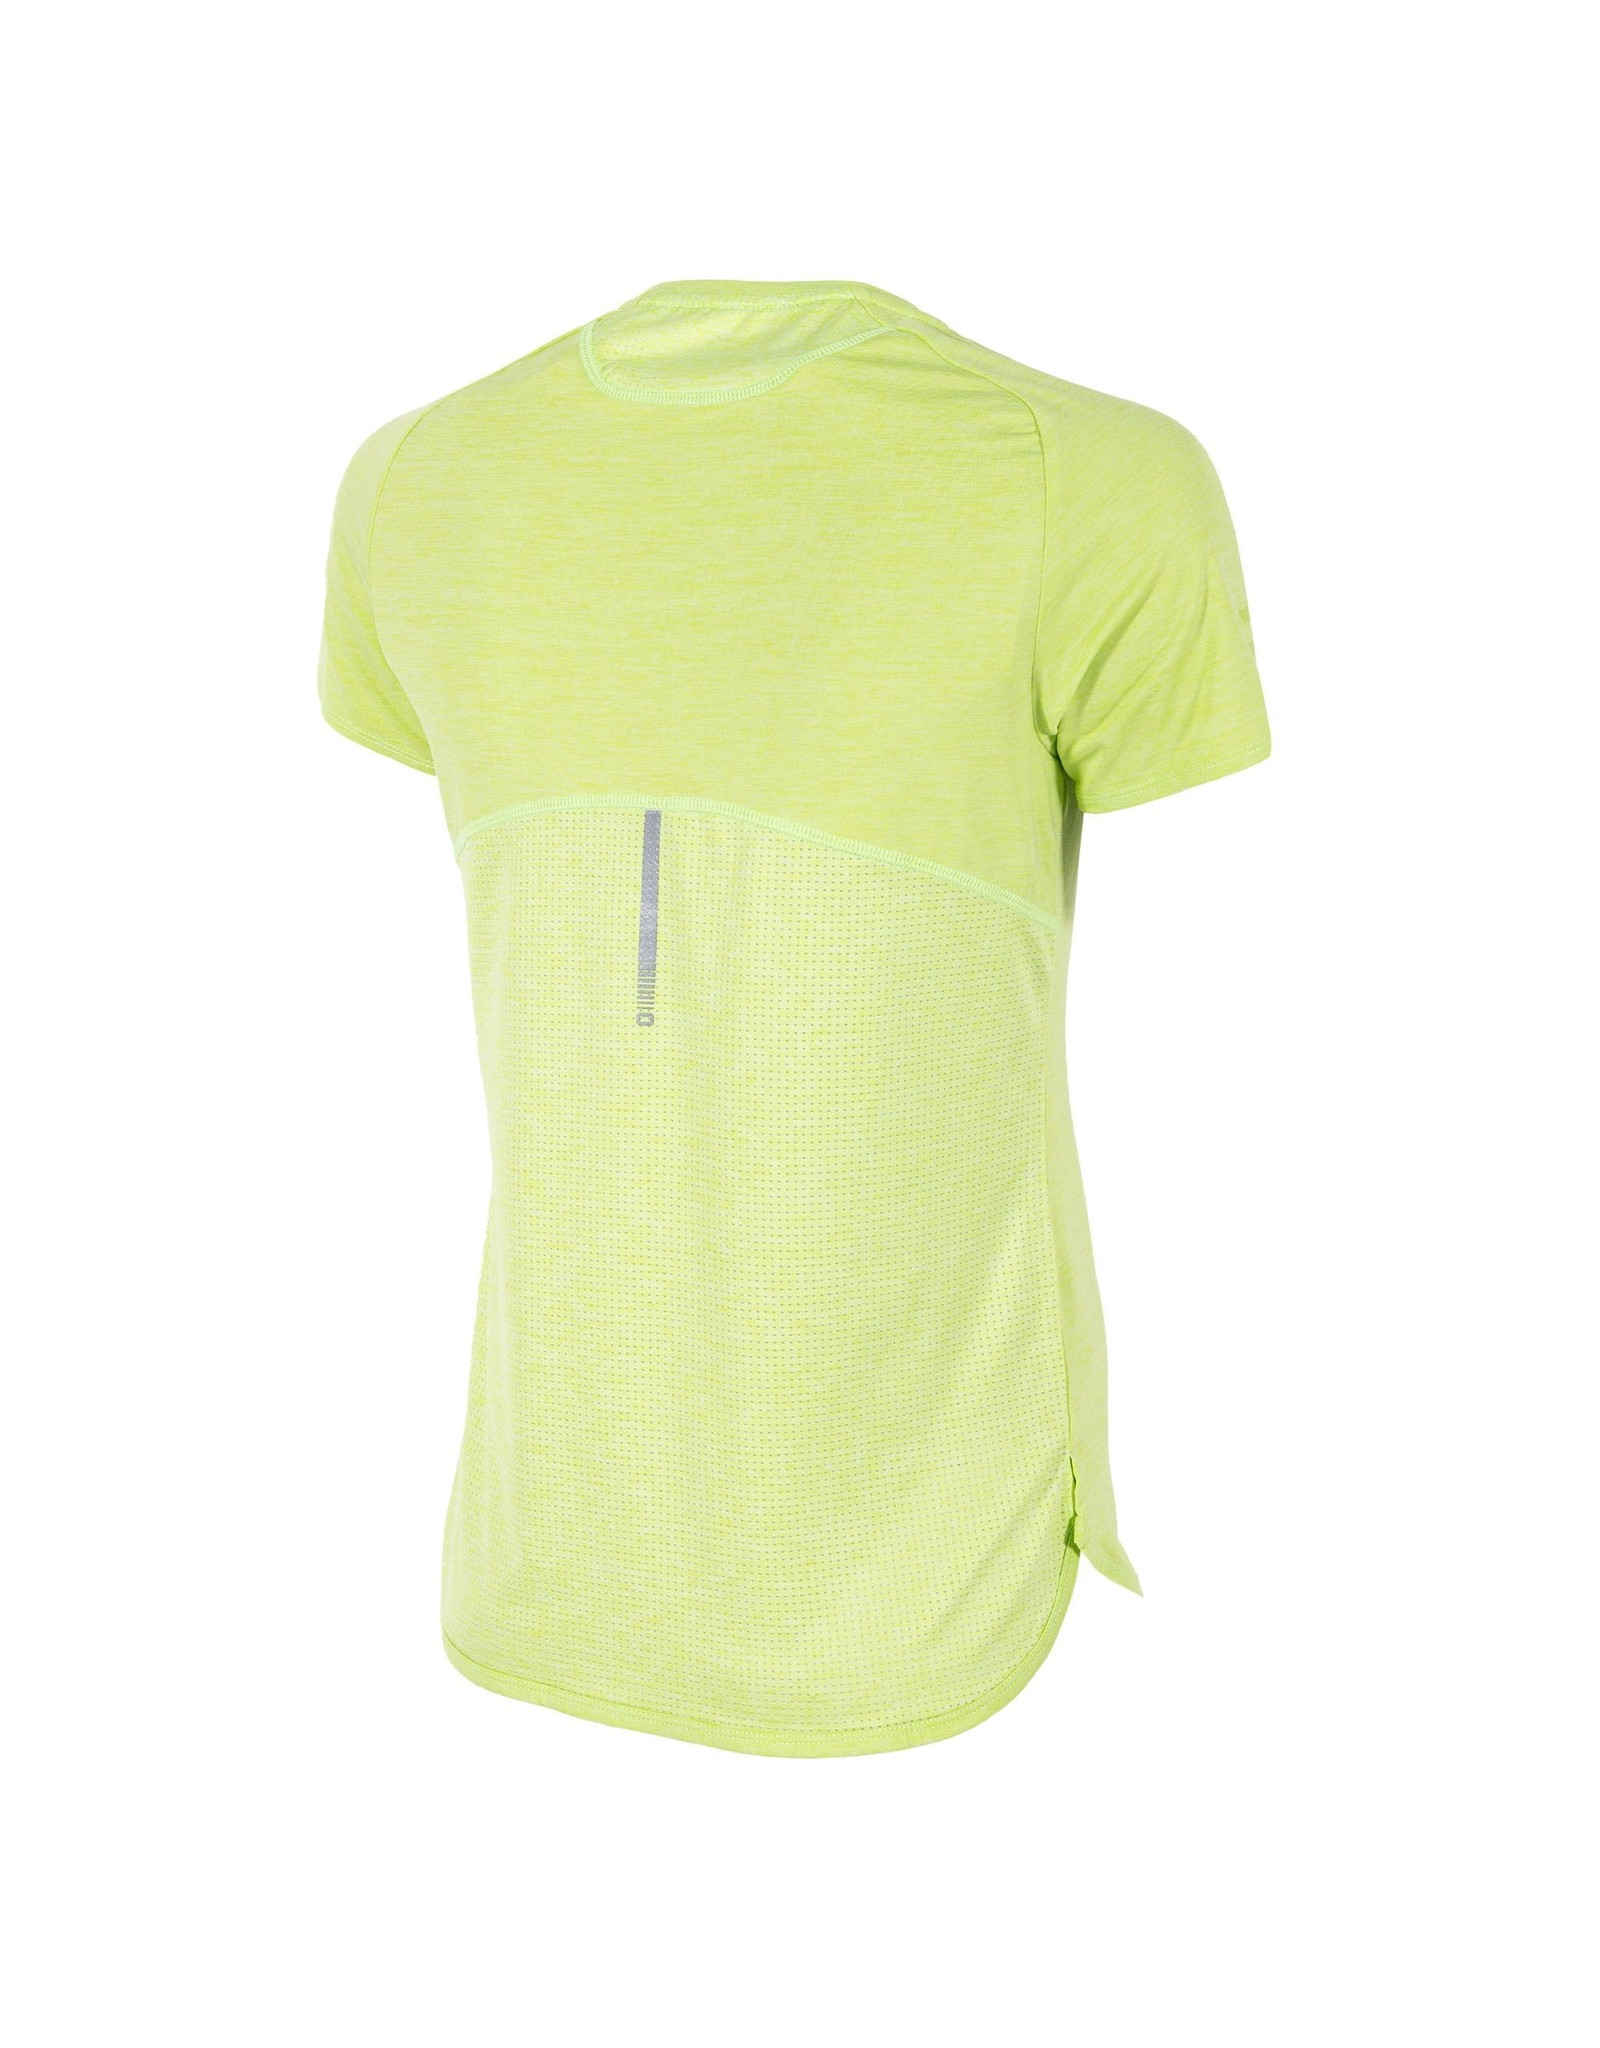 Stanno Functionals Workout Tee Ladies